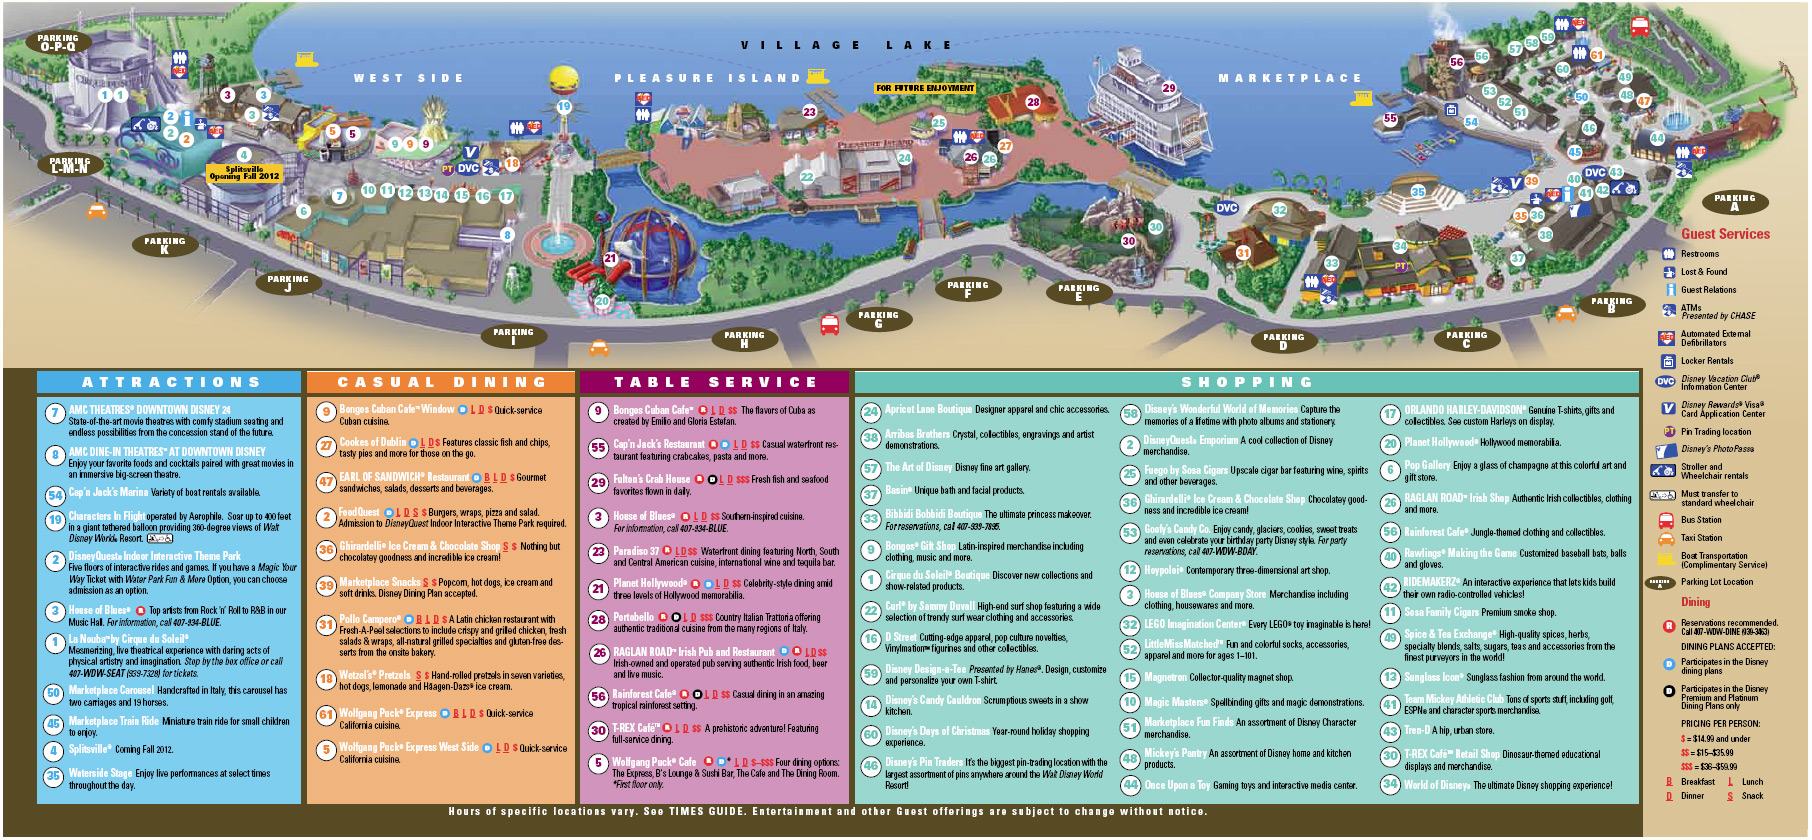 New Downtown Disney guide map - Photo 1 of 1 on